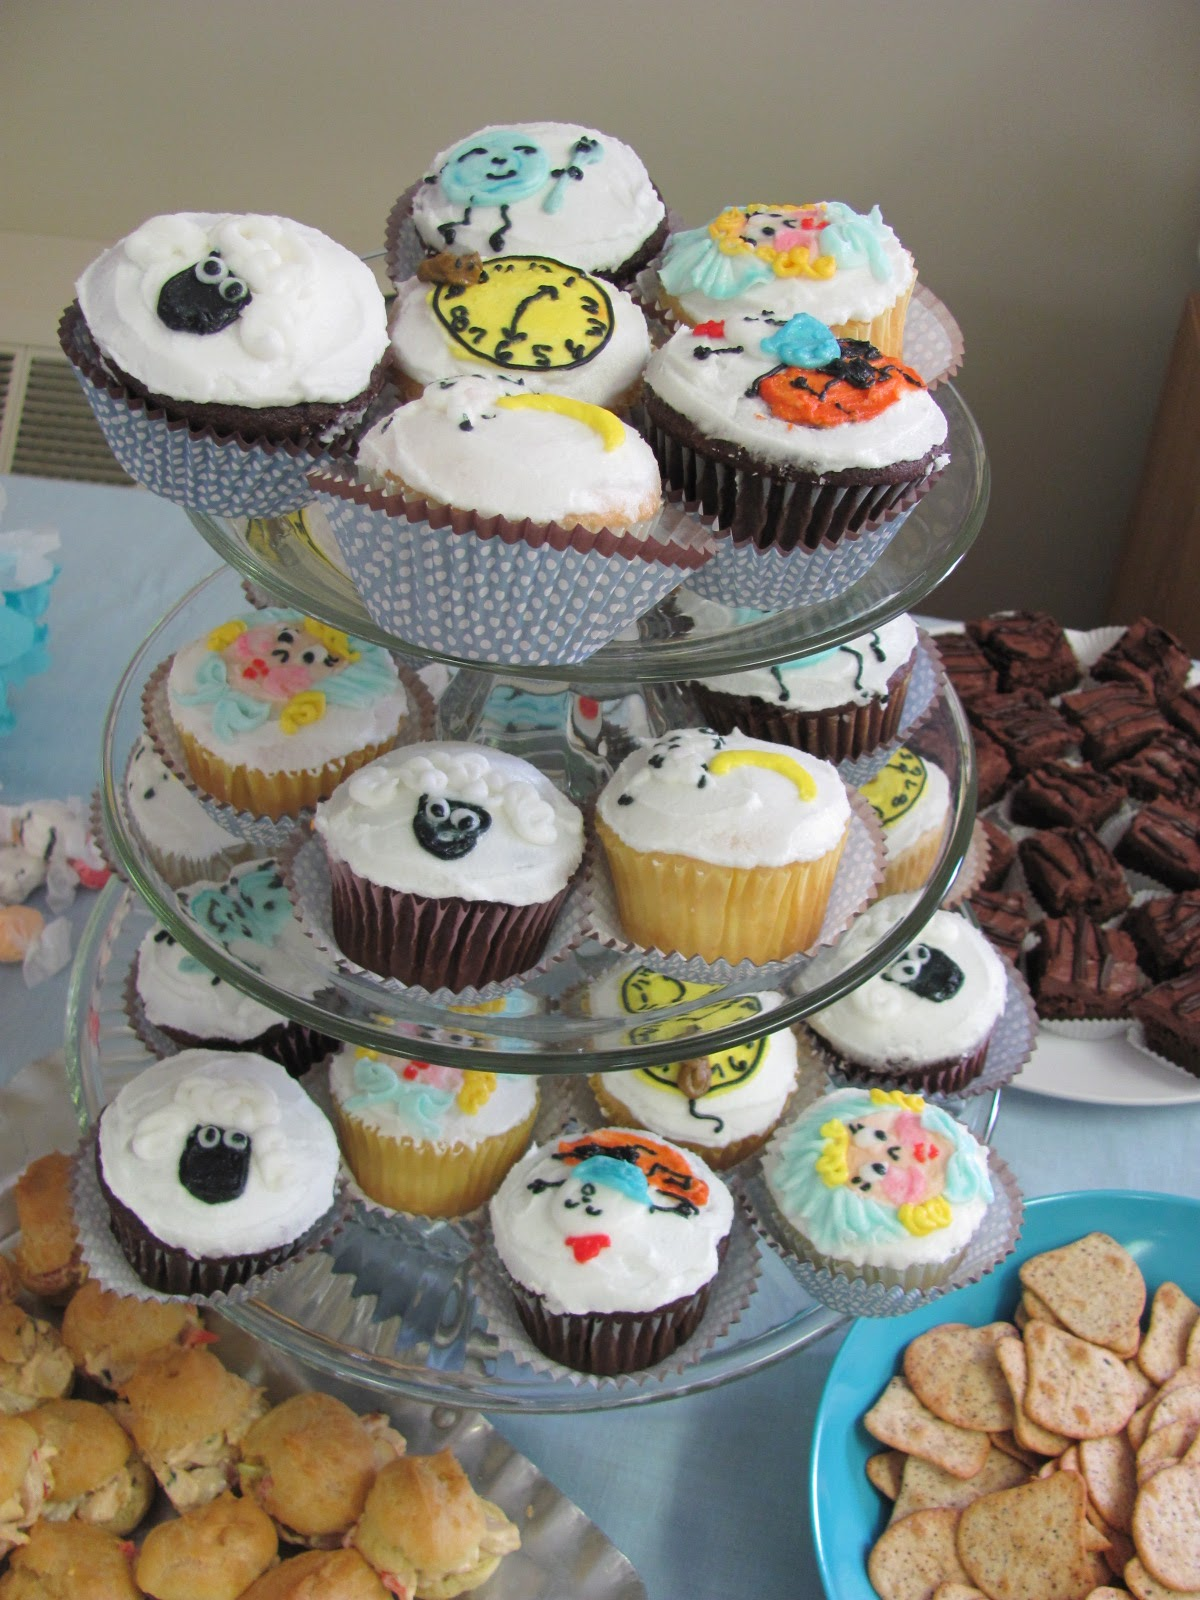 nursery rhyme characters have been frosted onto the cupcakes!